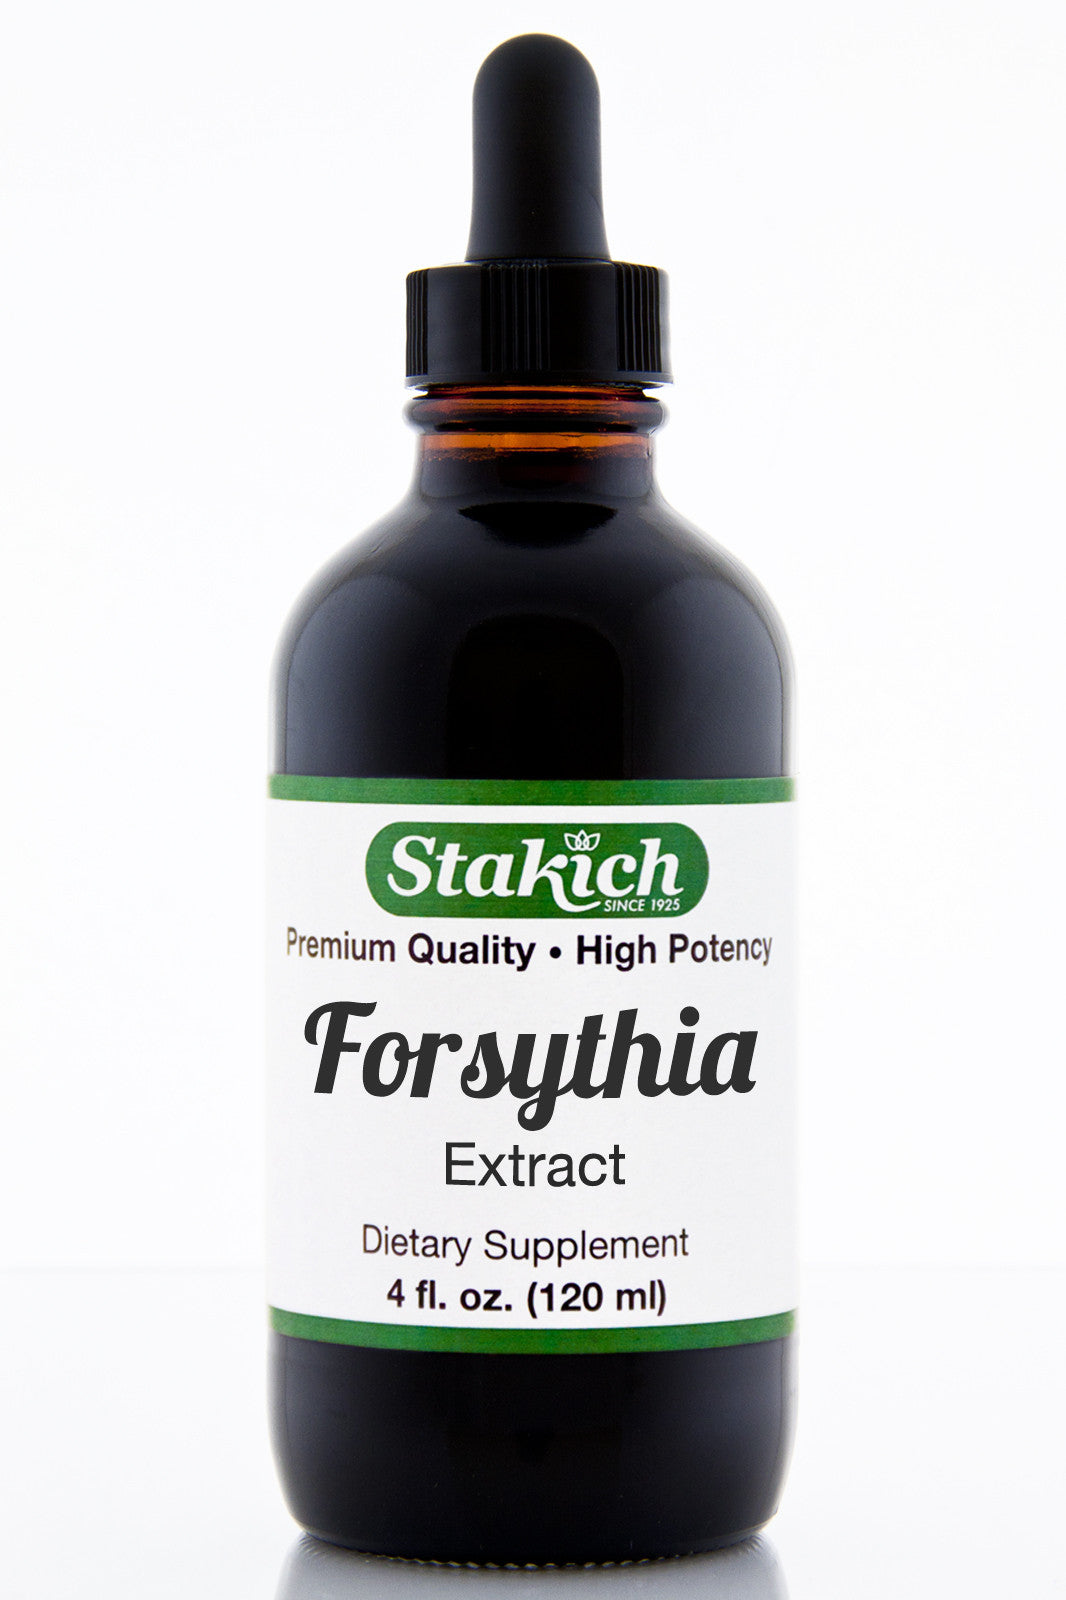 Forsythia Extract